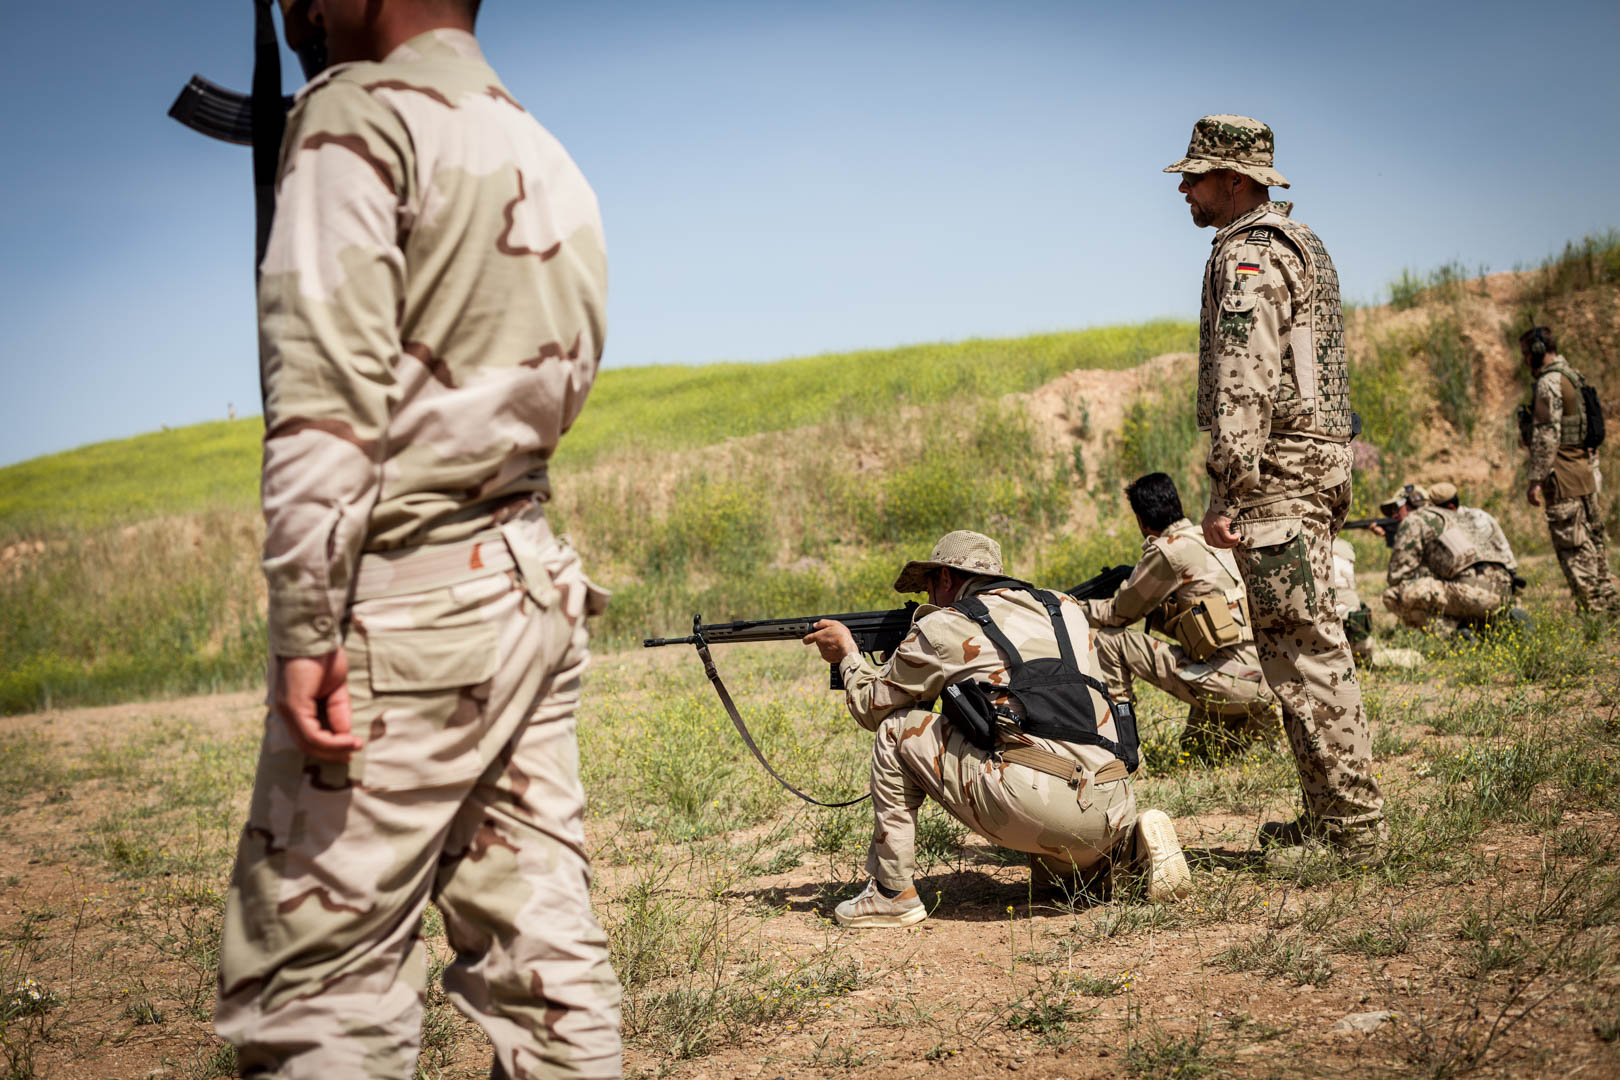 Kurdish soldiers are receiving target practice from German military advisers at the shooting range.